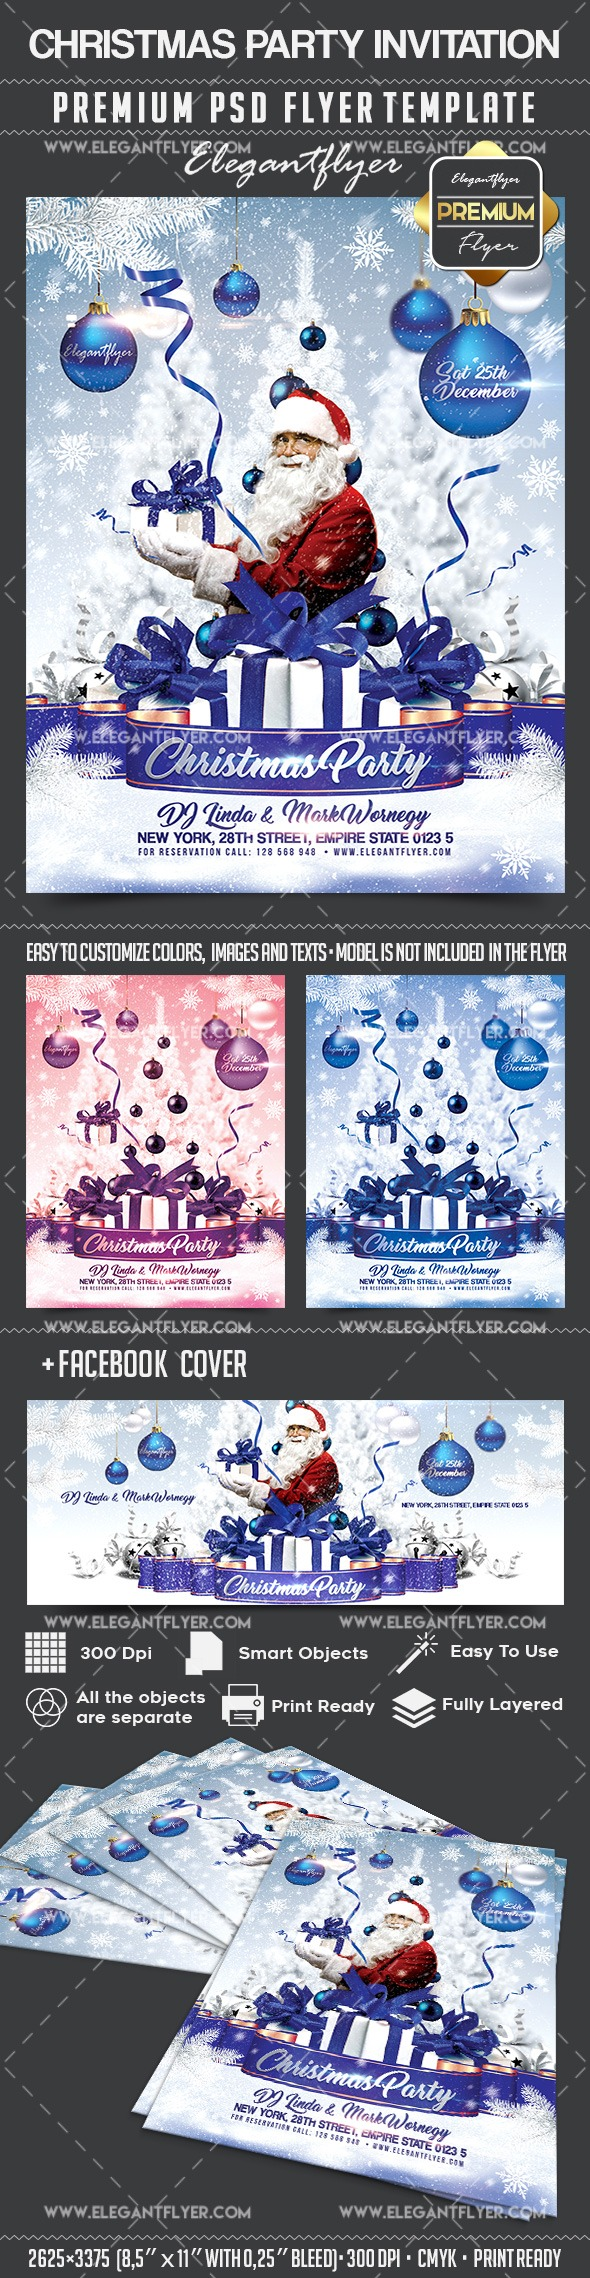 Christmas Party Invitation Flyer PSD Template Facebook Cover – Party Invitation Flyer